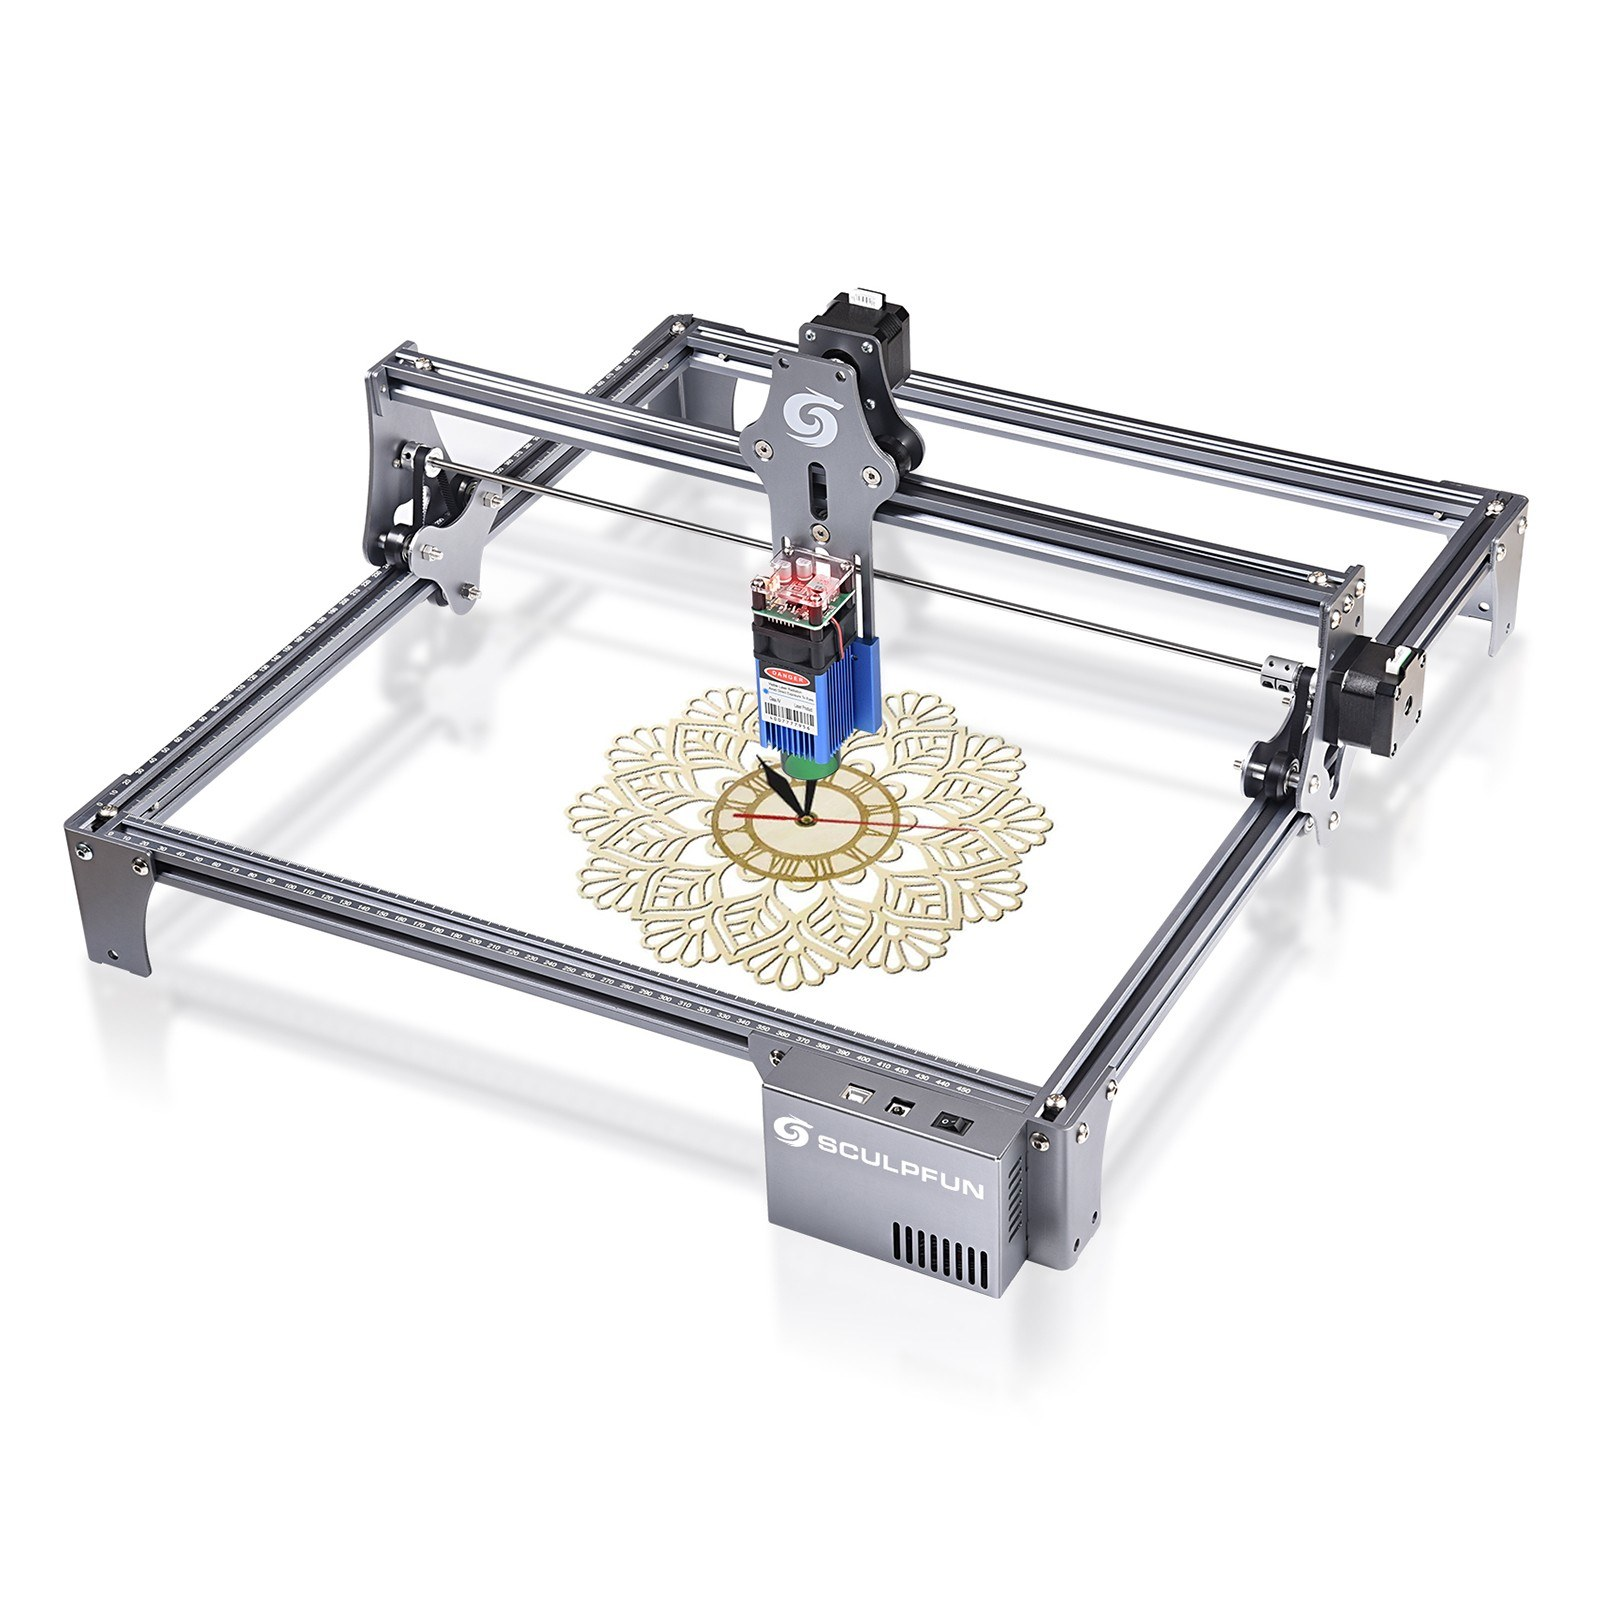 Tomtop - [EU Warehouse] $136 OFF SCULPFUN S6 Pro Spot Compressed Laser Engraver, Free Shipping $292